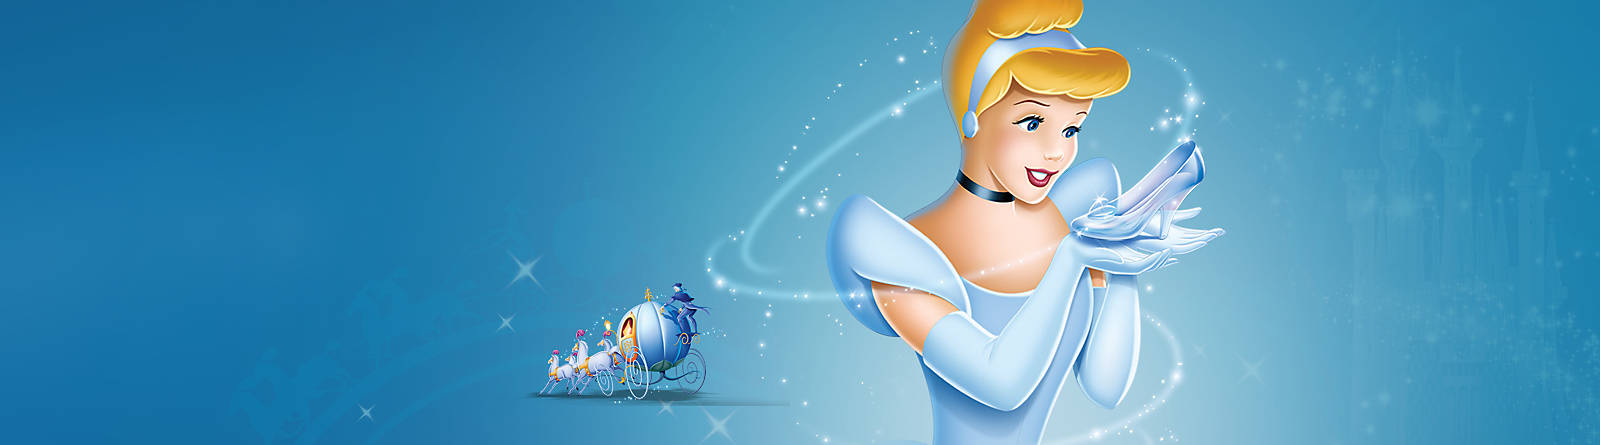 Cinderella Bibbidi Bobbidi Boo!  Discover our range of Cinderella costumes, toys, accessories and more